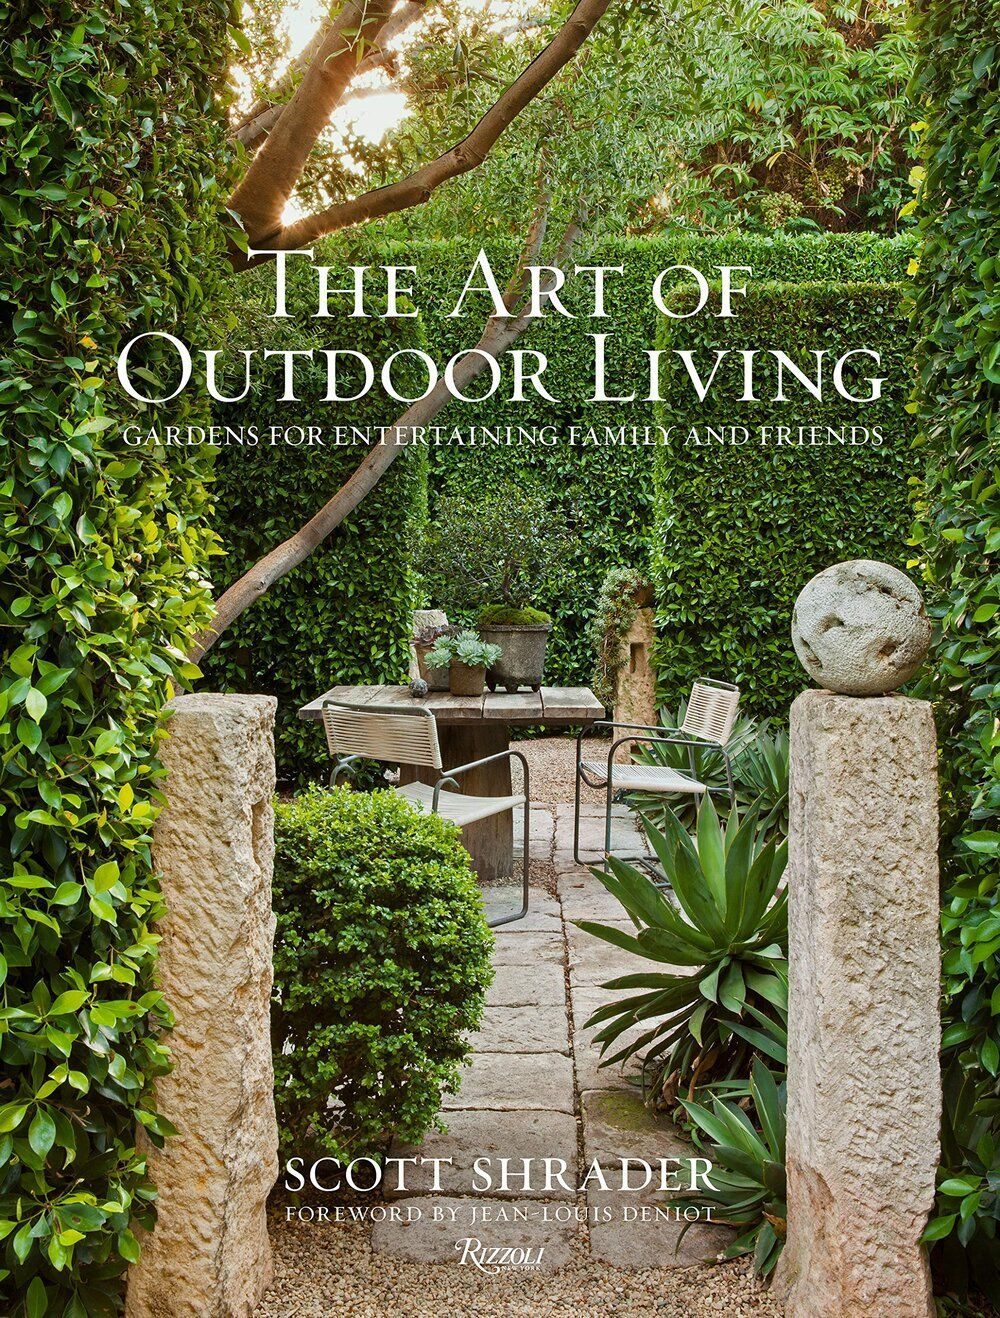 Outdoor Inspiration Coffee Table Books For Landscaping Lovers Scout Nimble Outdoor Inspirat In 2020 Outdoor Living Garden Landscape Design Outdoor Landscaping